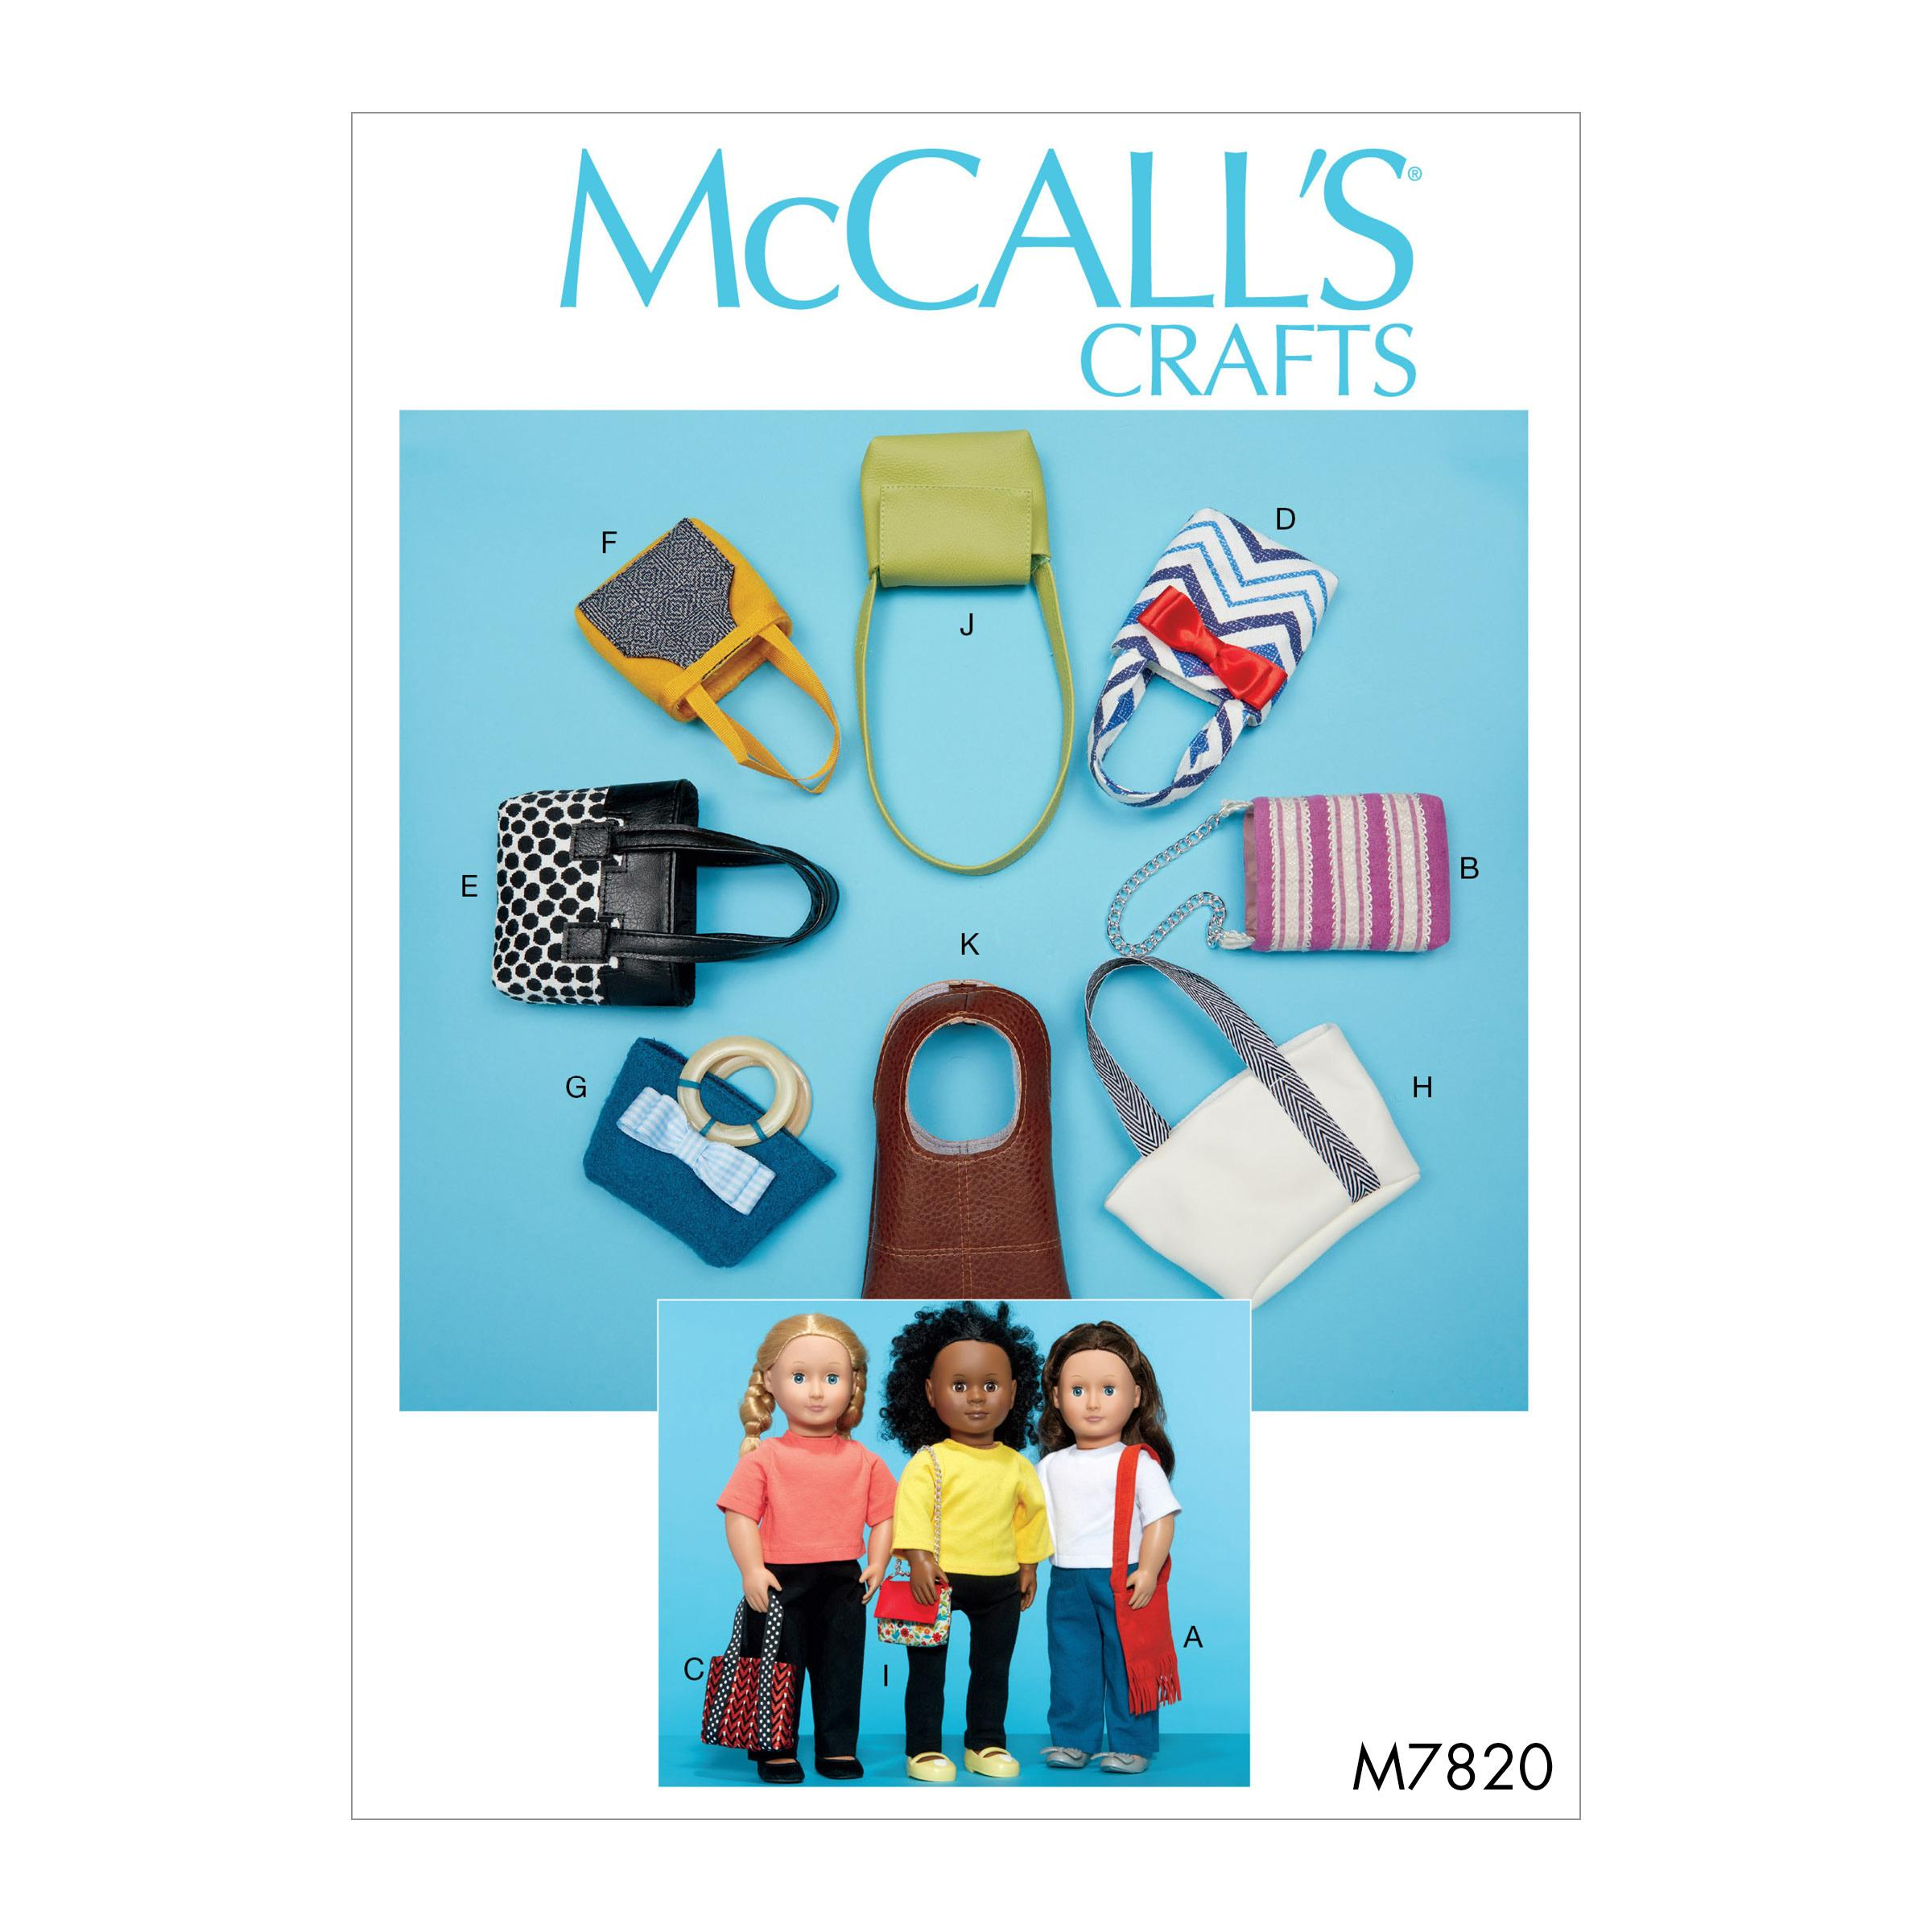 McCalls M7820 Crafts Dolls & Toys